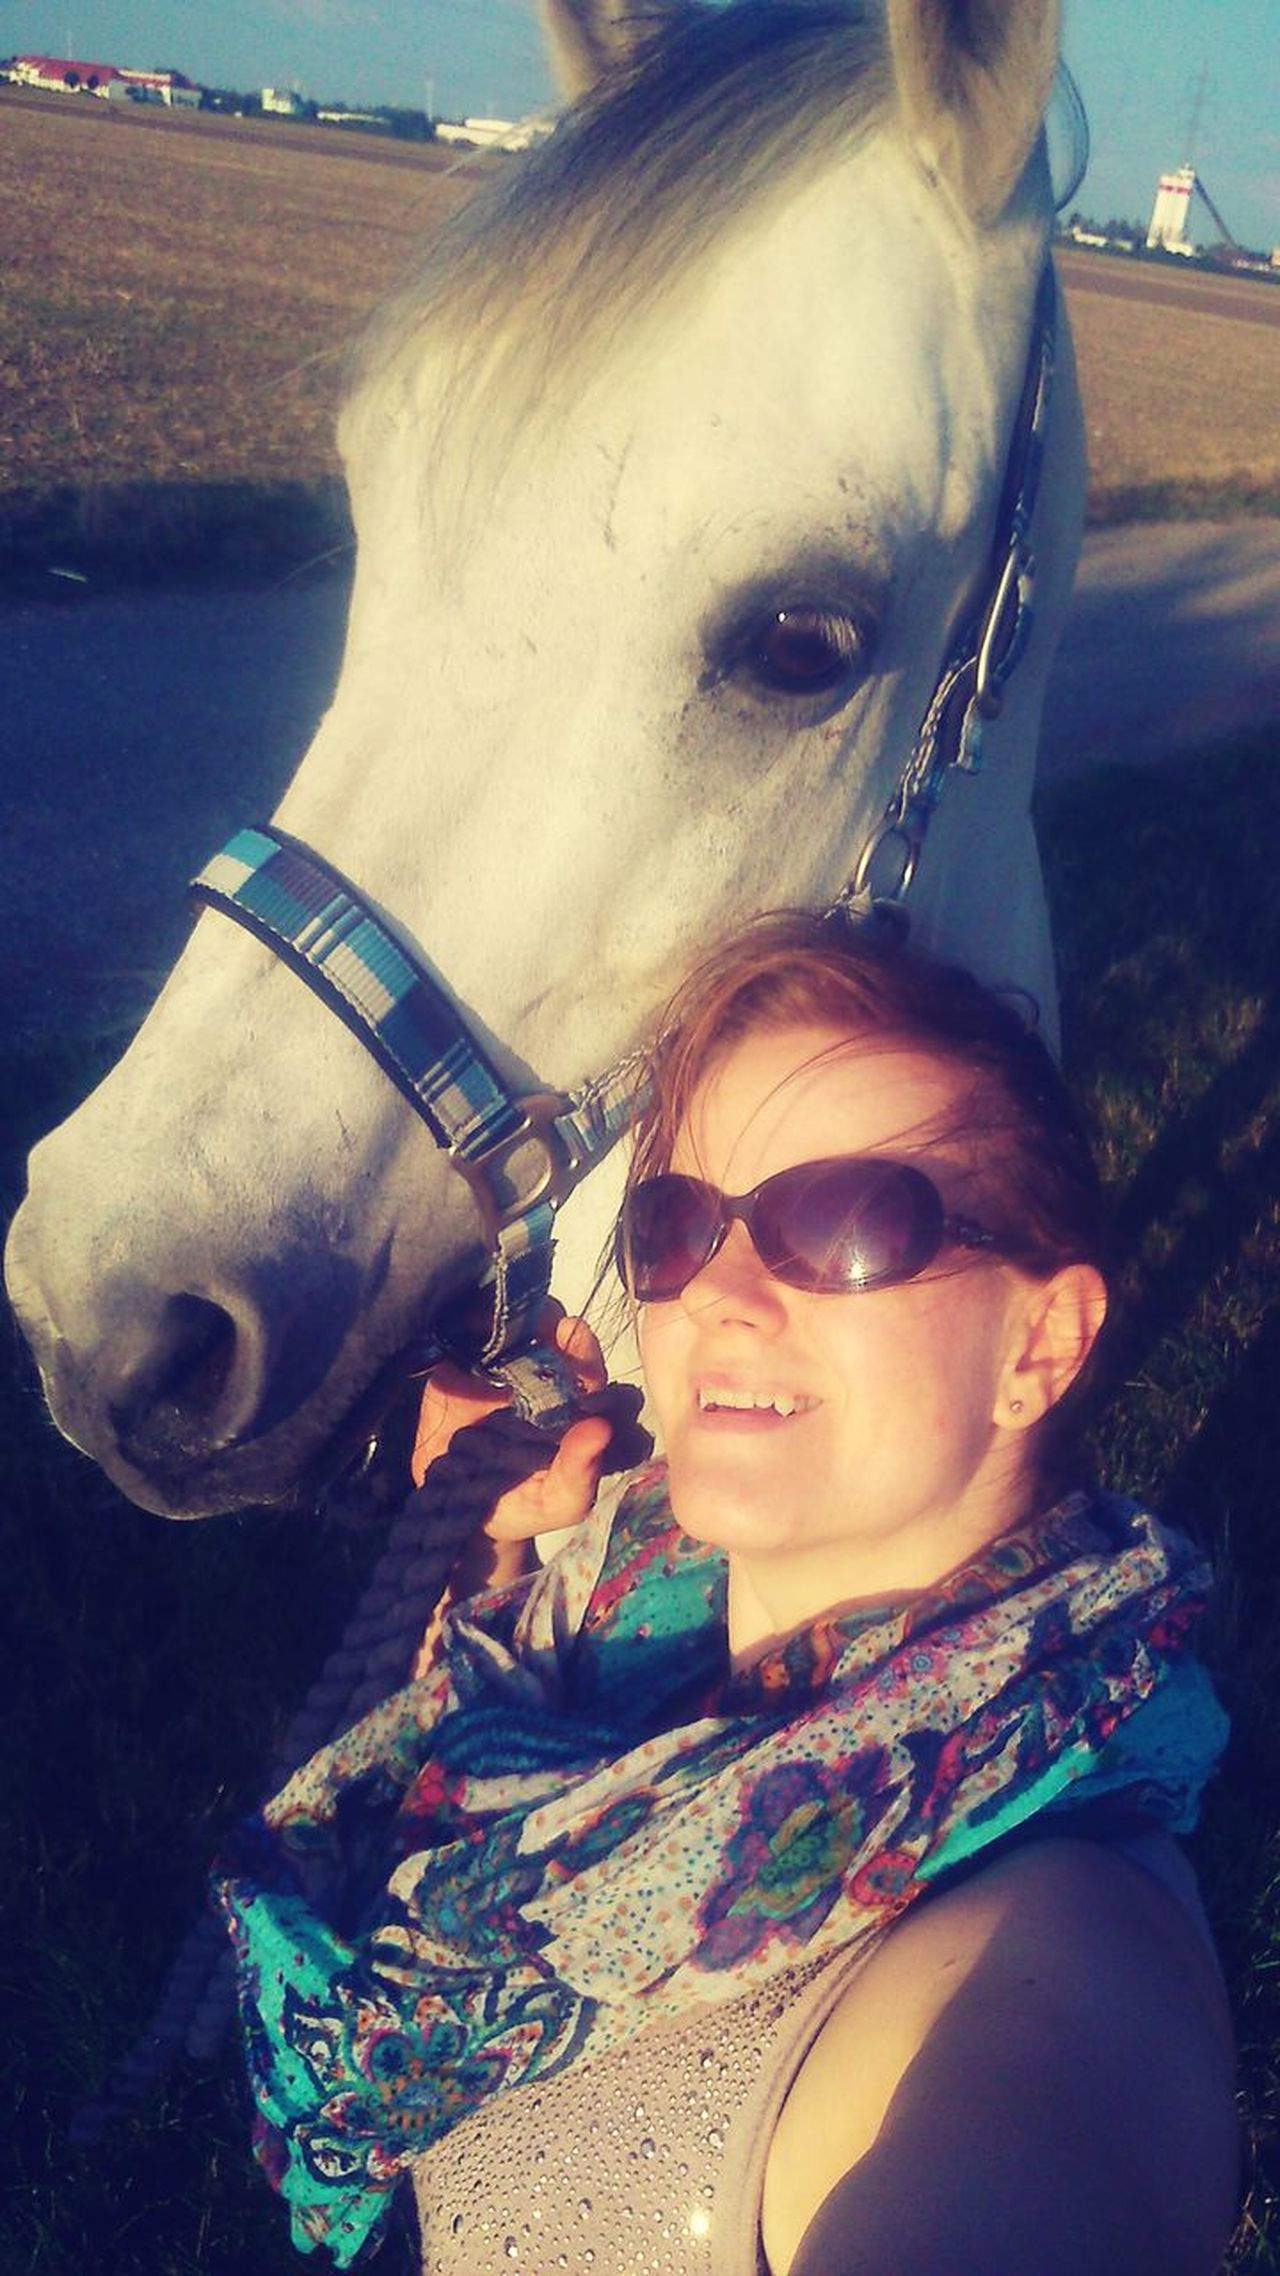 Taking Photos Hello World Cheese! That's Me Enjoying Life I Love My Horse White Horse Nature Hanging Out